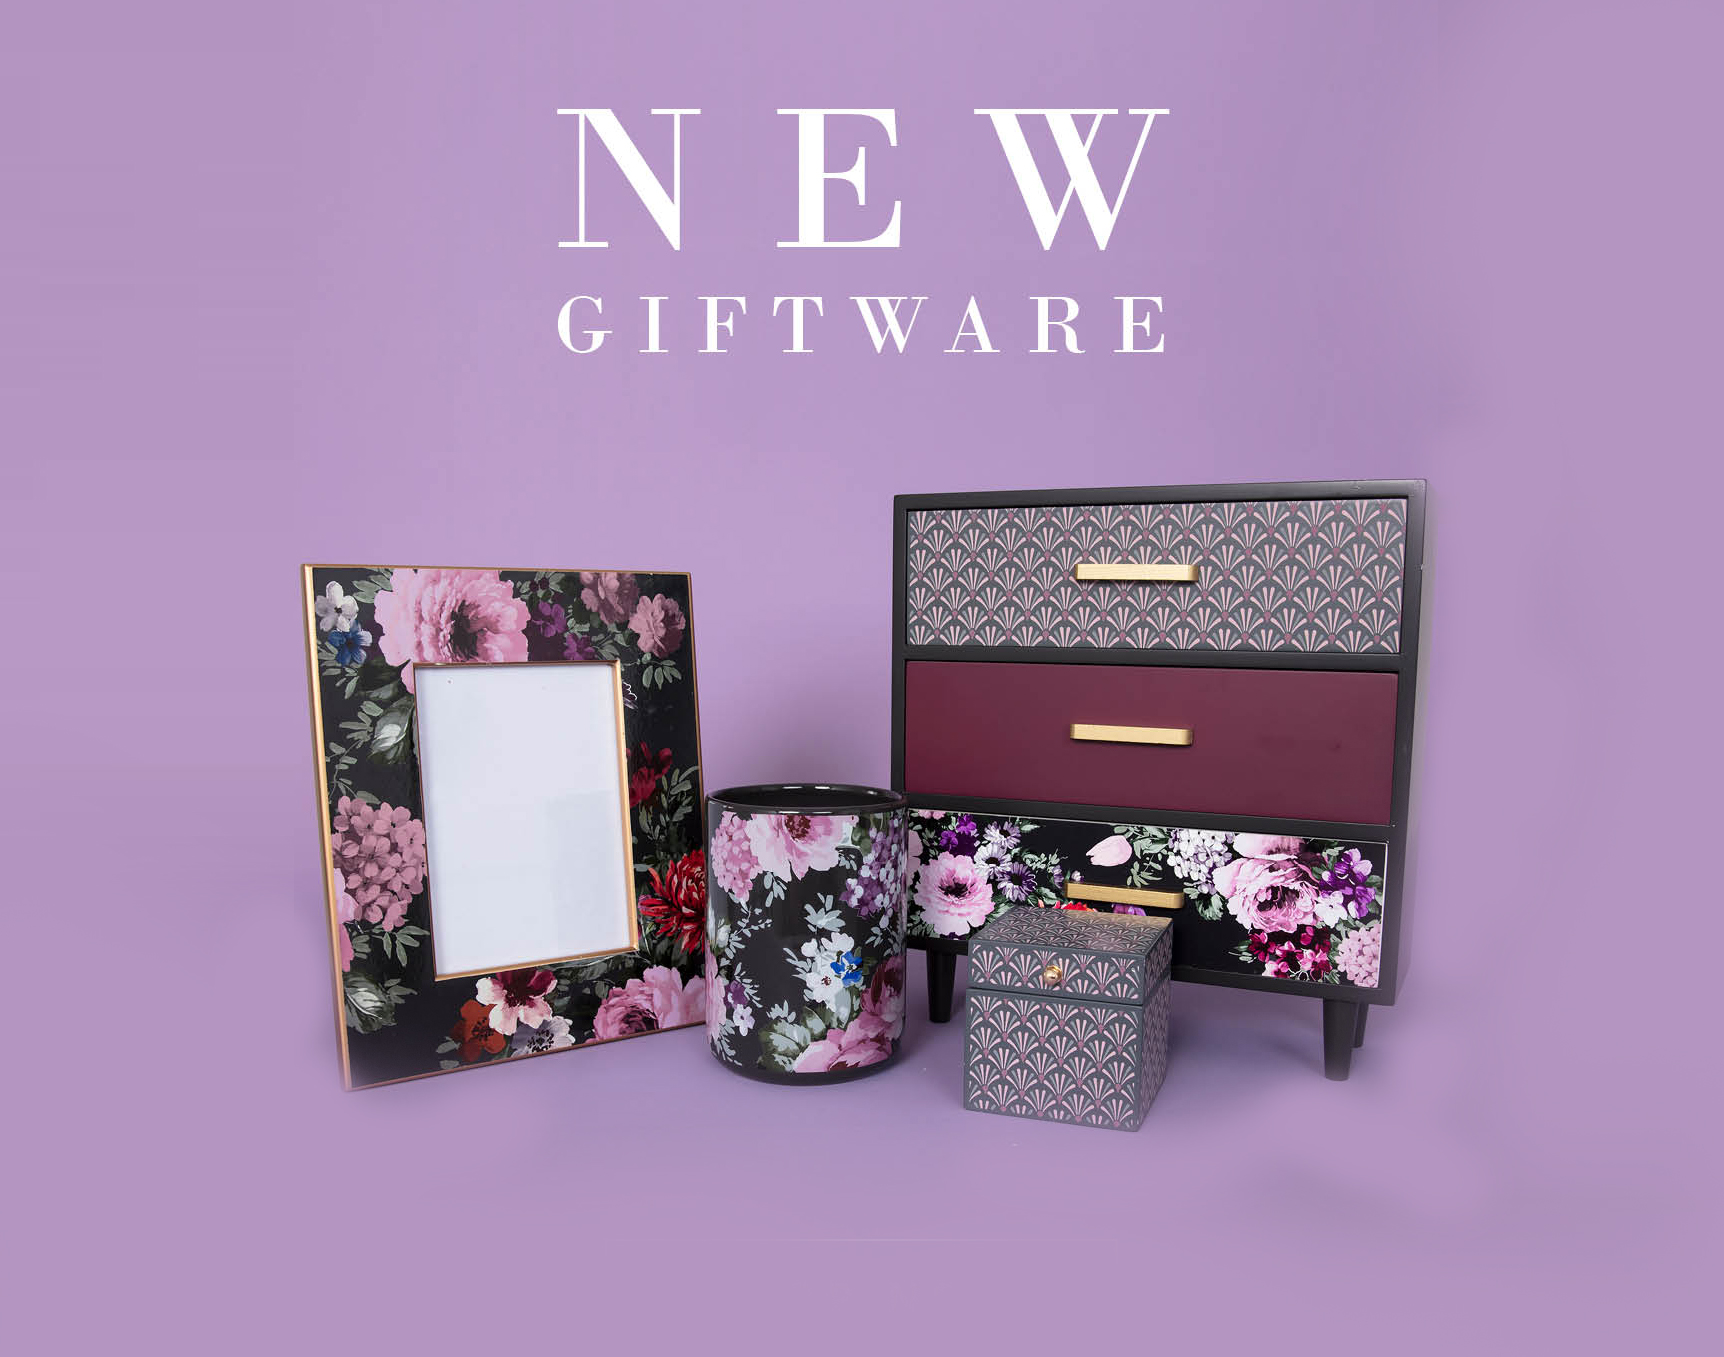 NEW arrivals to @Carraig Donn Gift & Home! Refresh your home